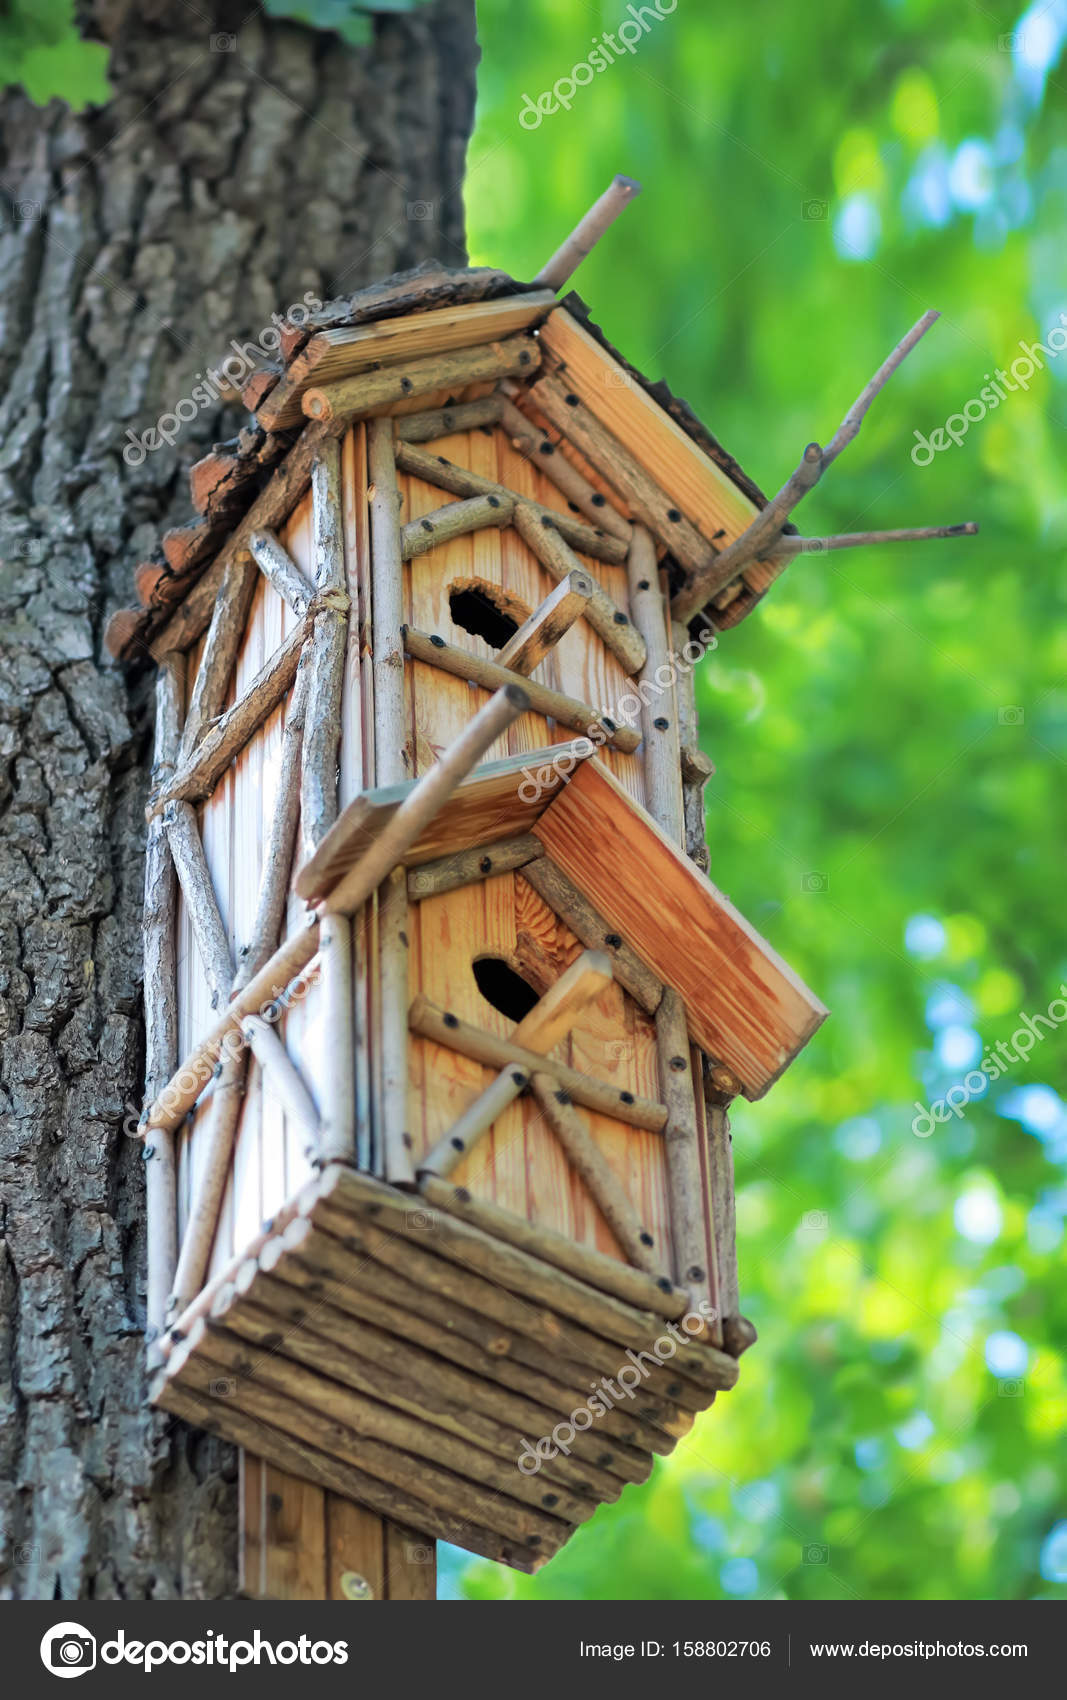 maison d oiseau en bois suspendu l arbre dans un parc la main cr ative photographie mr. Black Bedroom Furniture Sets. Home Design Ideas